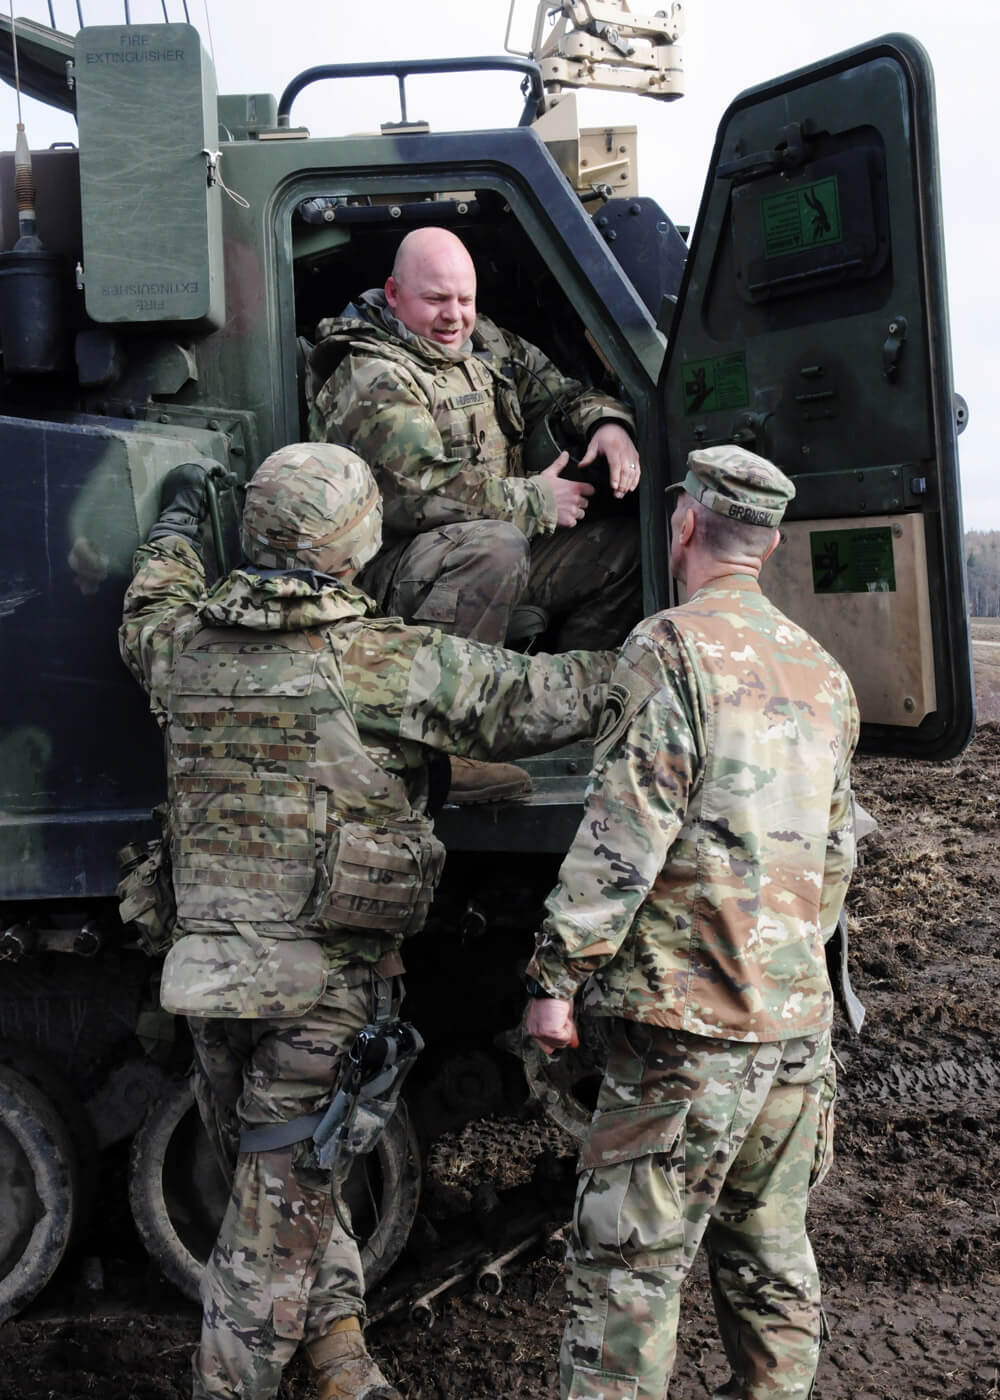 USAREUR Army National Guard Deputy Commanding General MG John Gronski meets with South Dakota Army National Guard Soldiers assigned to Bravo Battery, 1st Battalion, 147th Field Artillery Regiment, during exercise Dynamic Front 19 at Grafenwoehr Training Area, Germany, March 2019. North Carolina Army National Guard photo by SFC Craig Norton